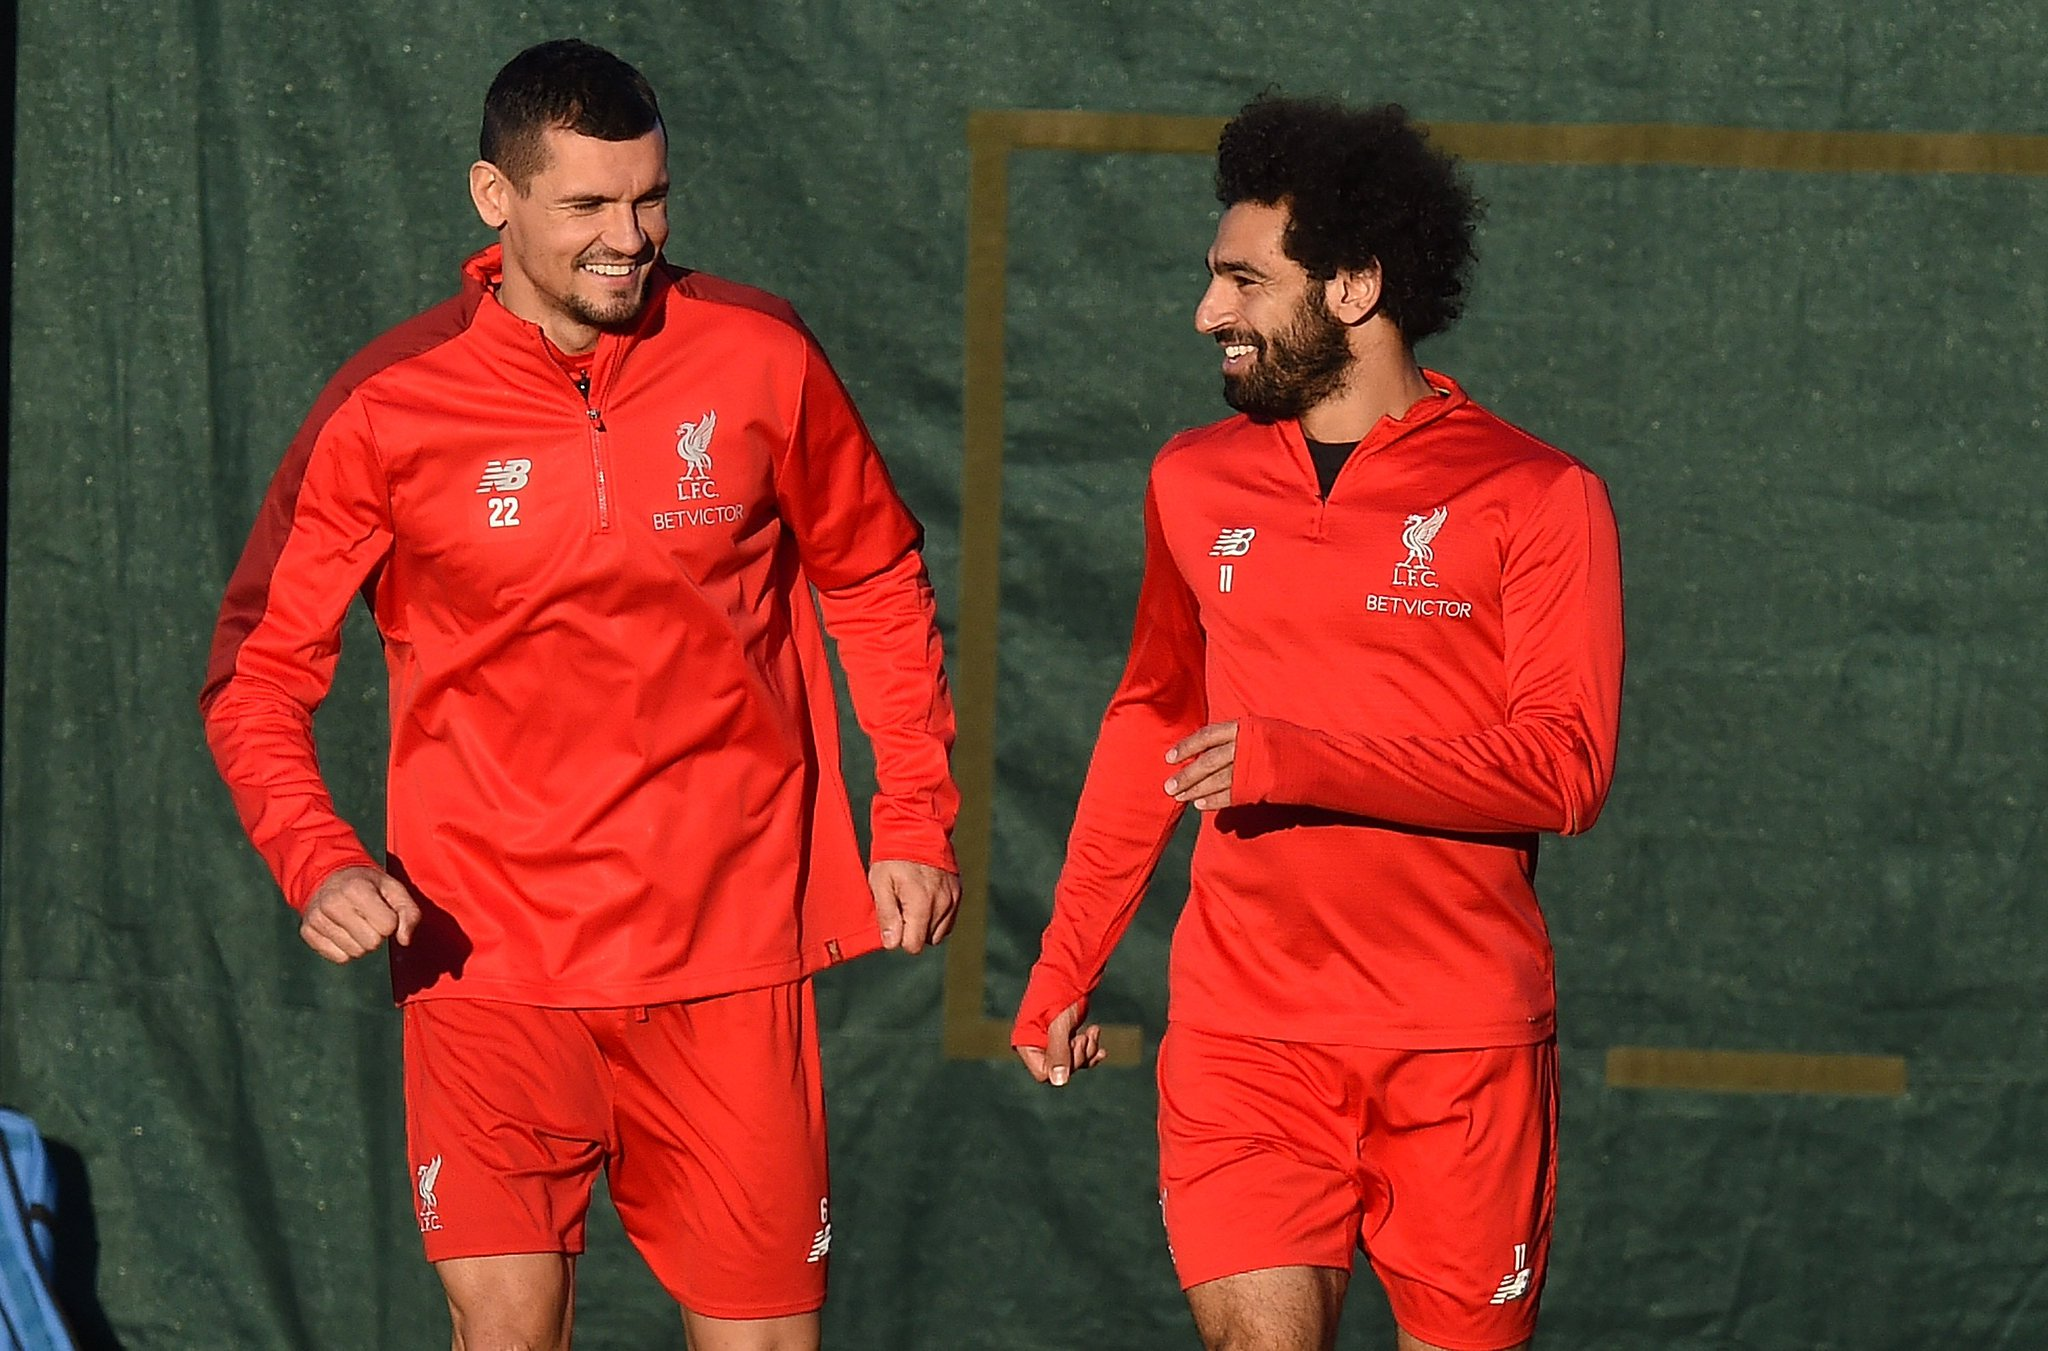 ����  Lovren x Salah https://t.co/PmMsZ1361h